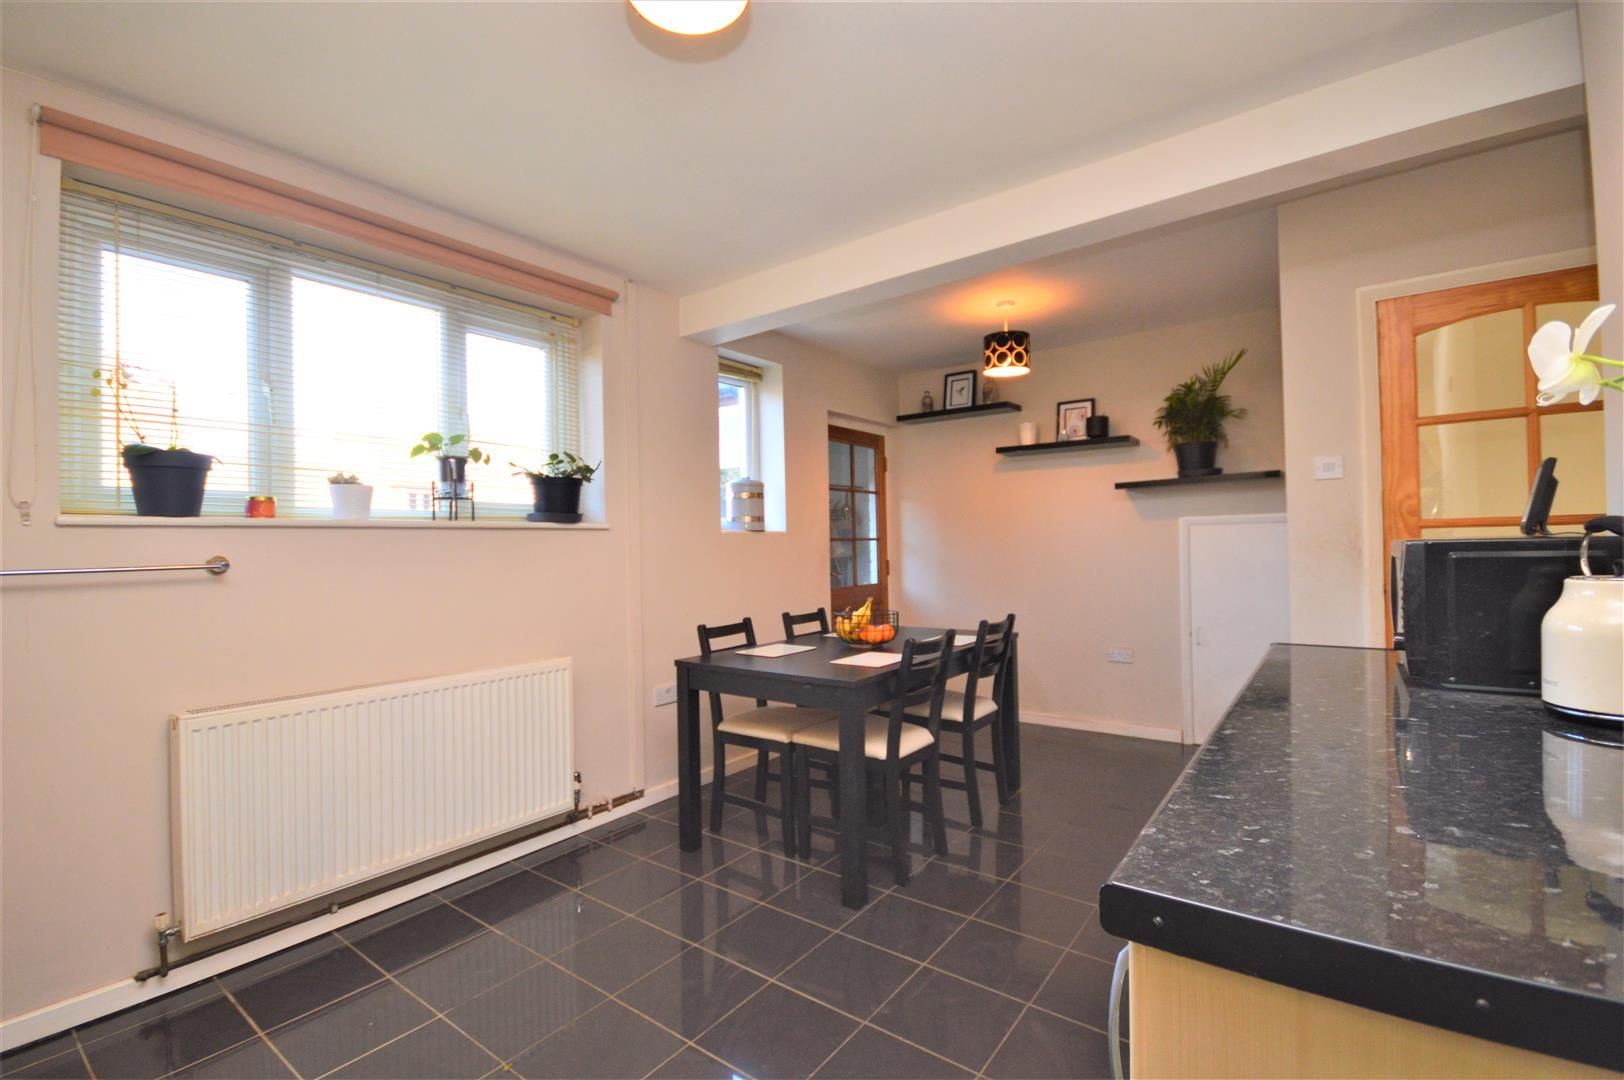 3 bed end-of-terrace for sale in Hereford  - Property Image 6